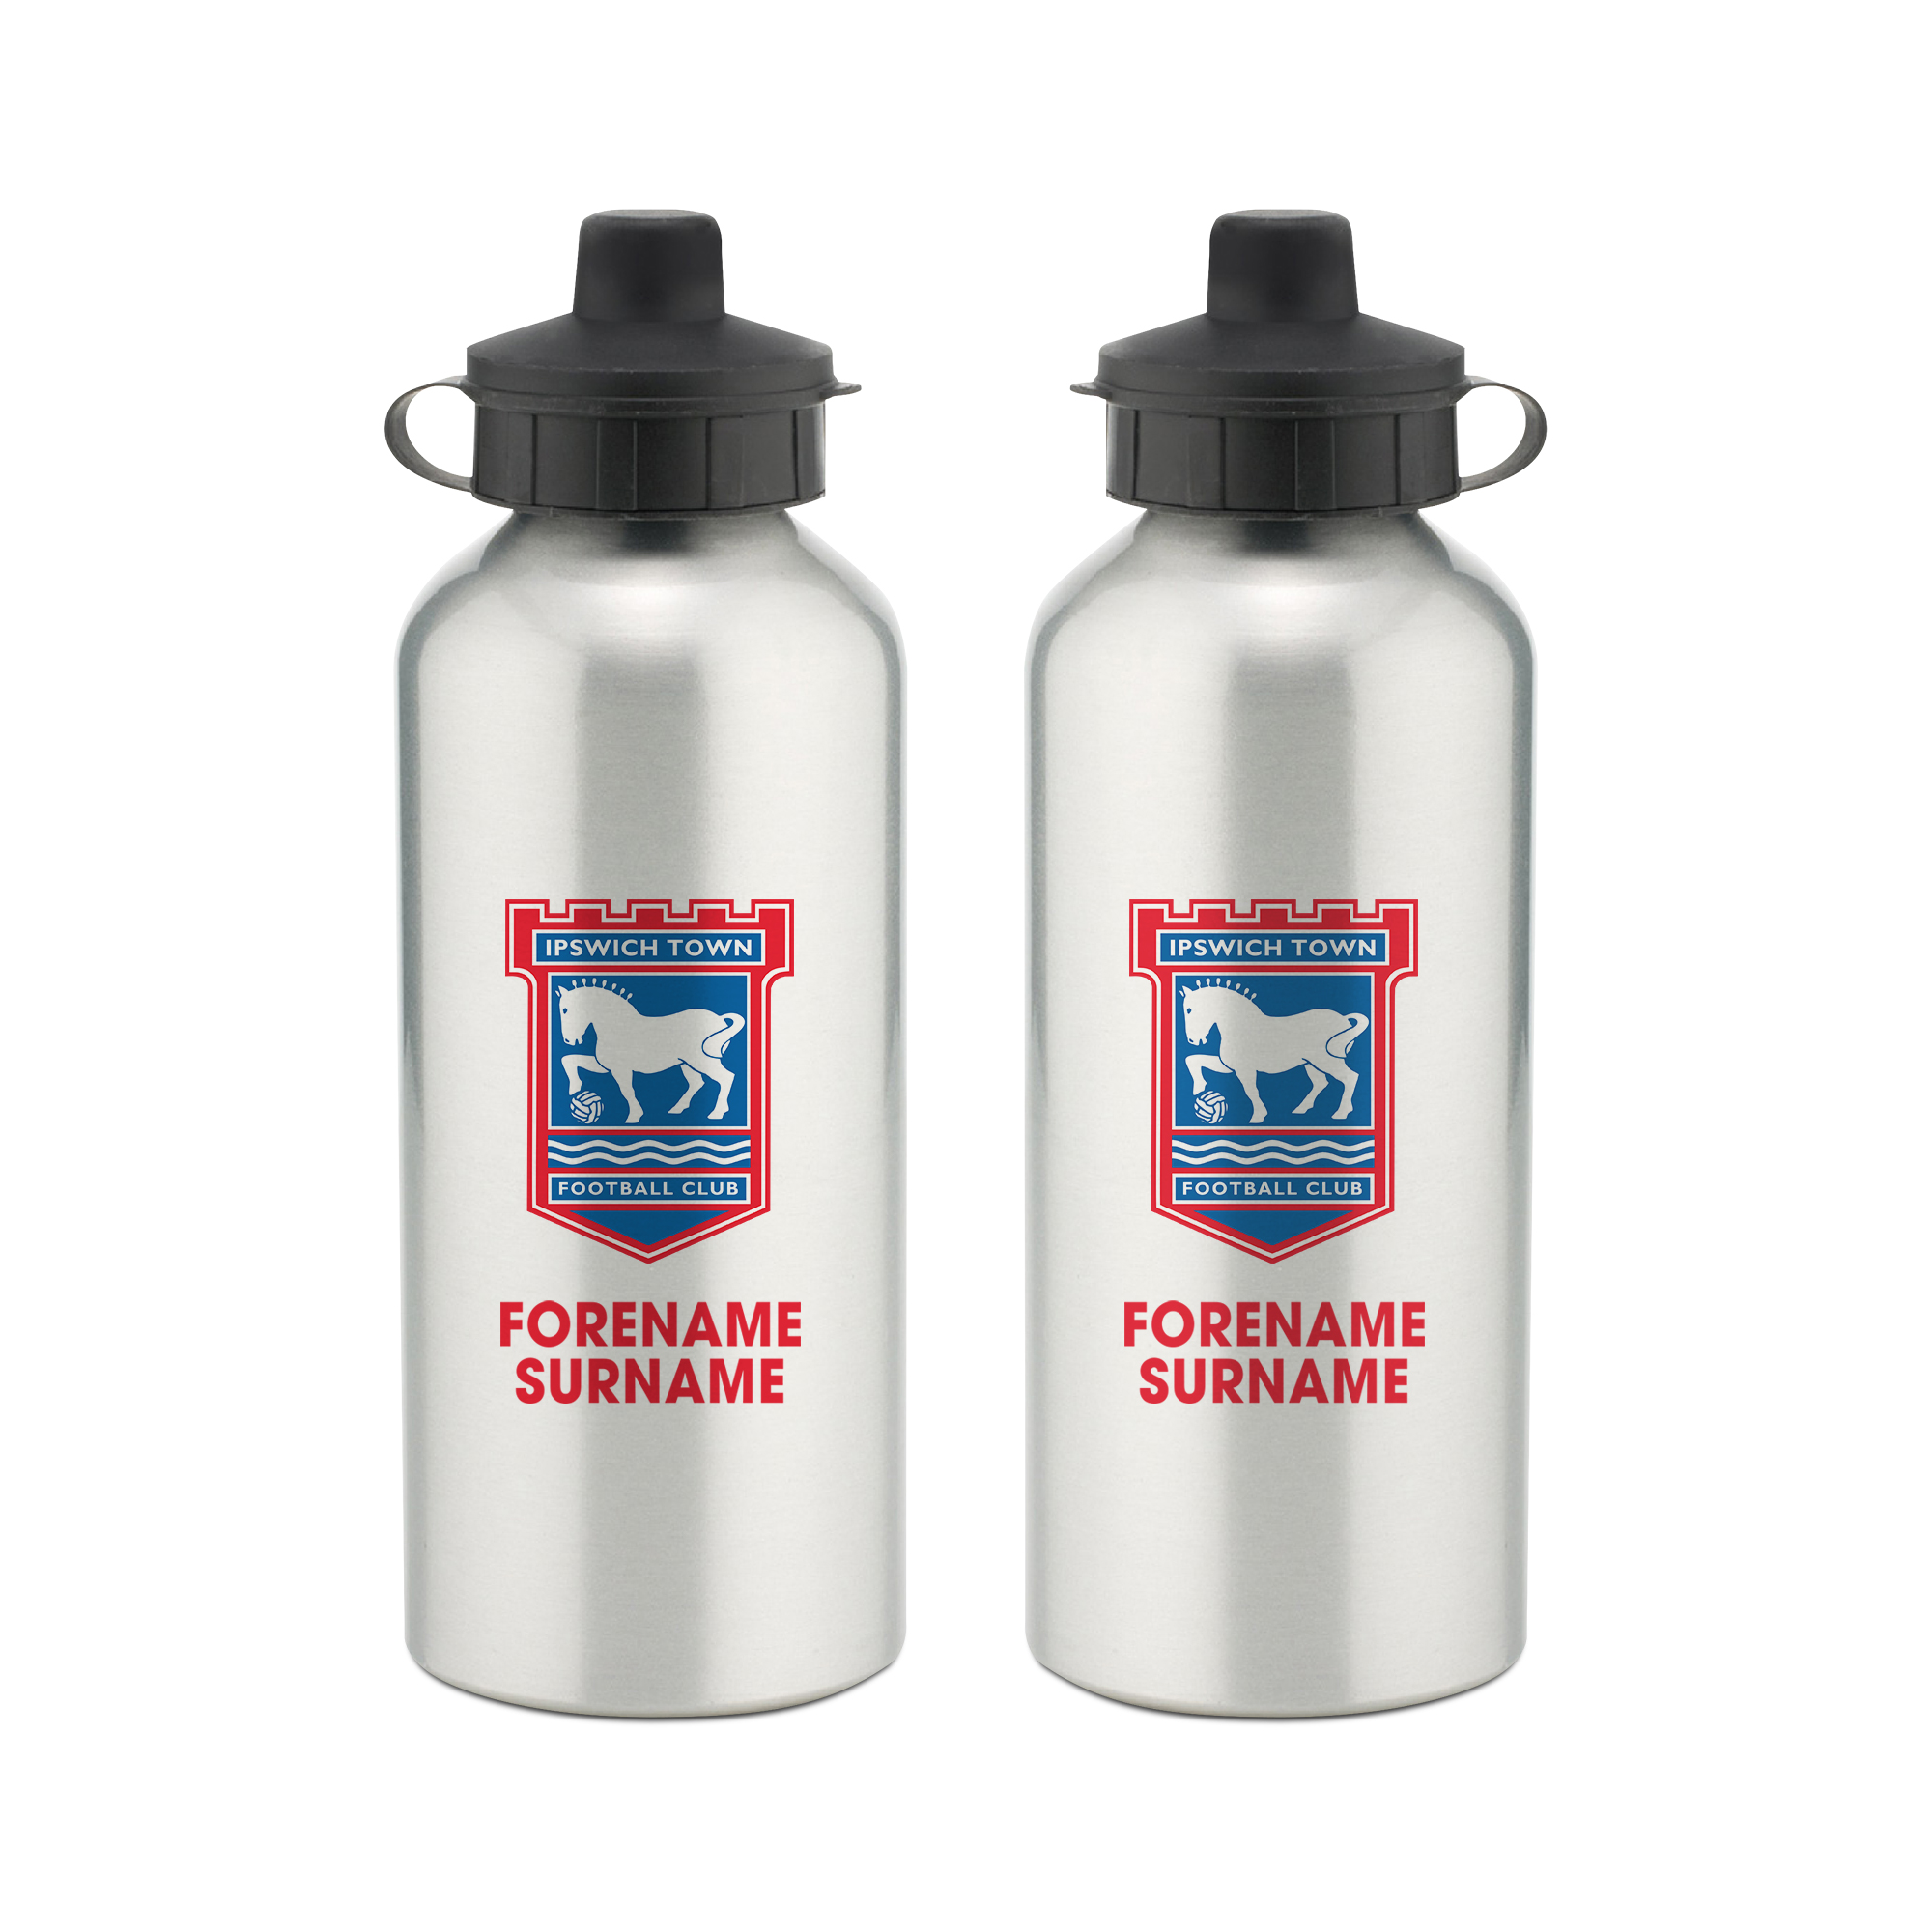 Ipswich Town FC Bold Crest Water Bottle